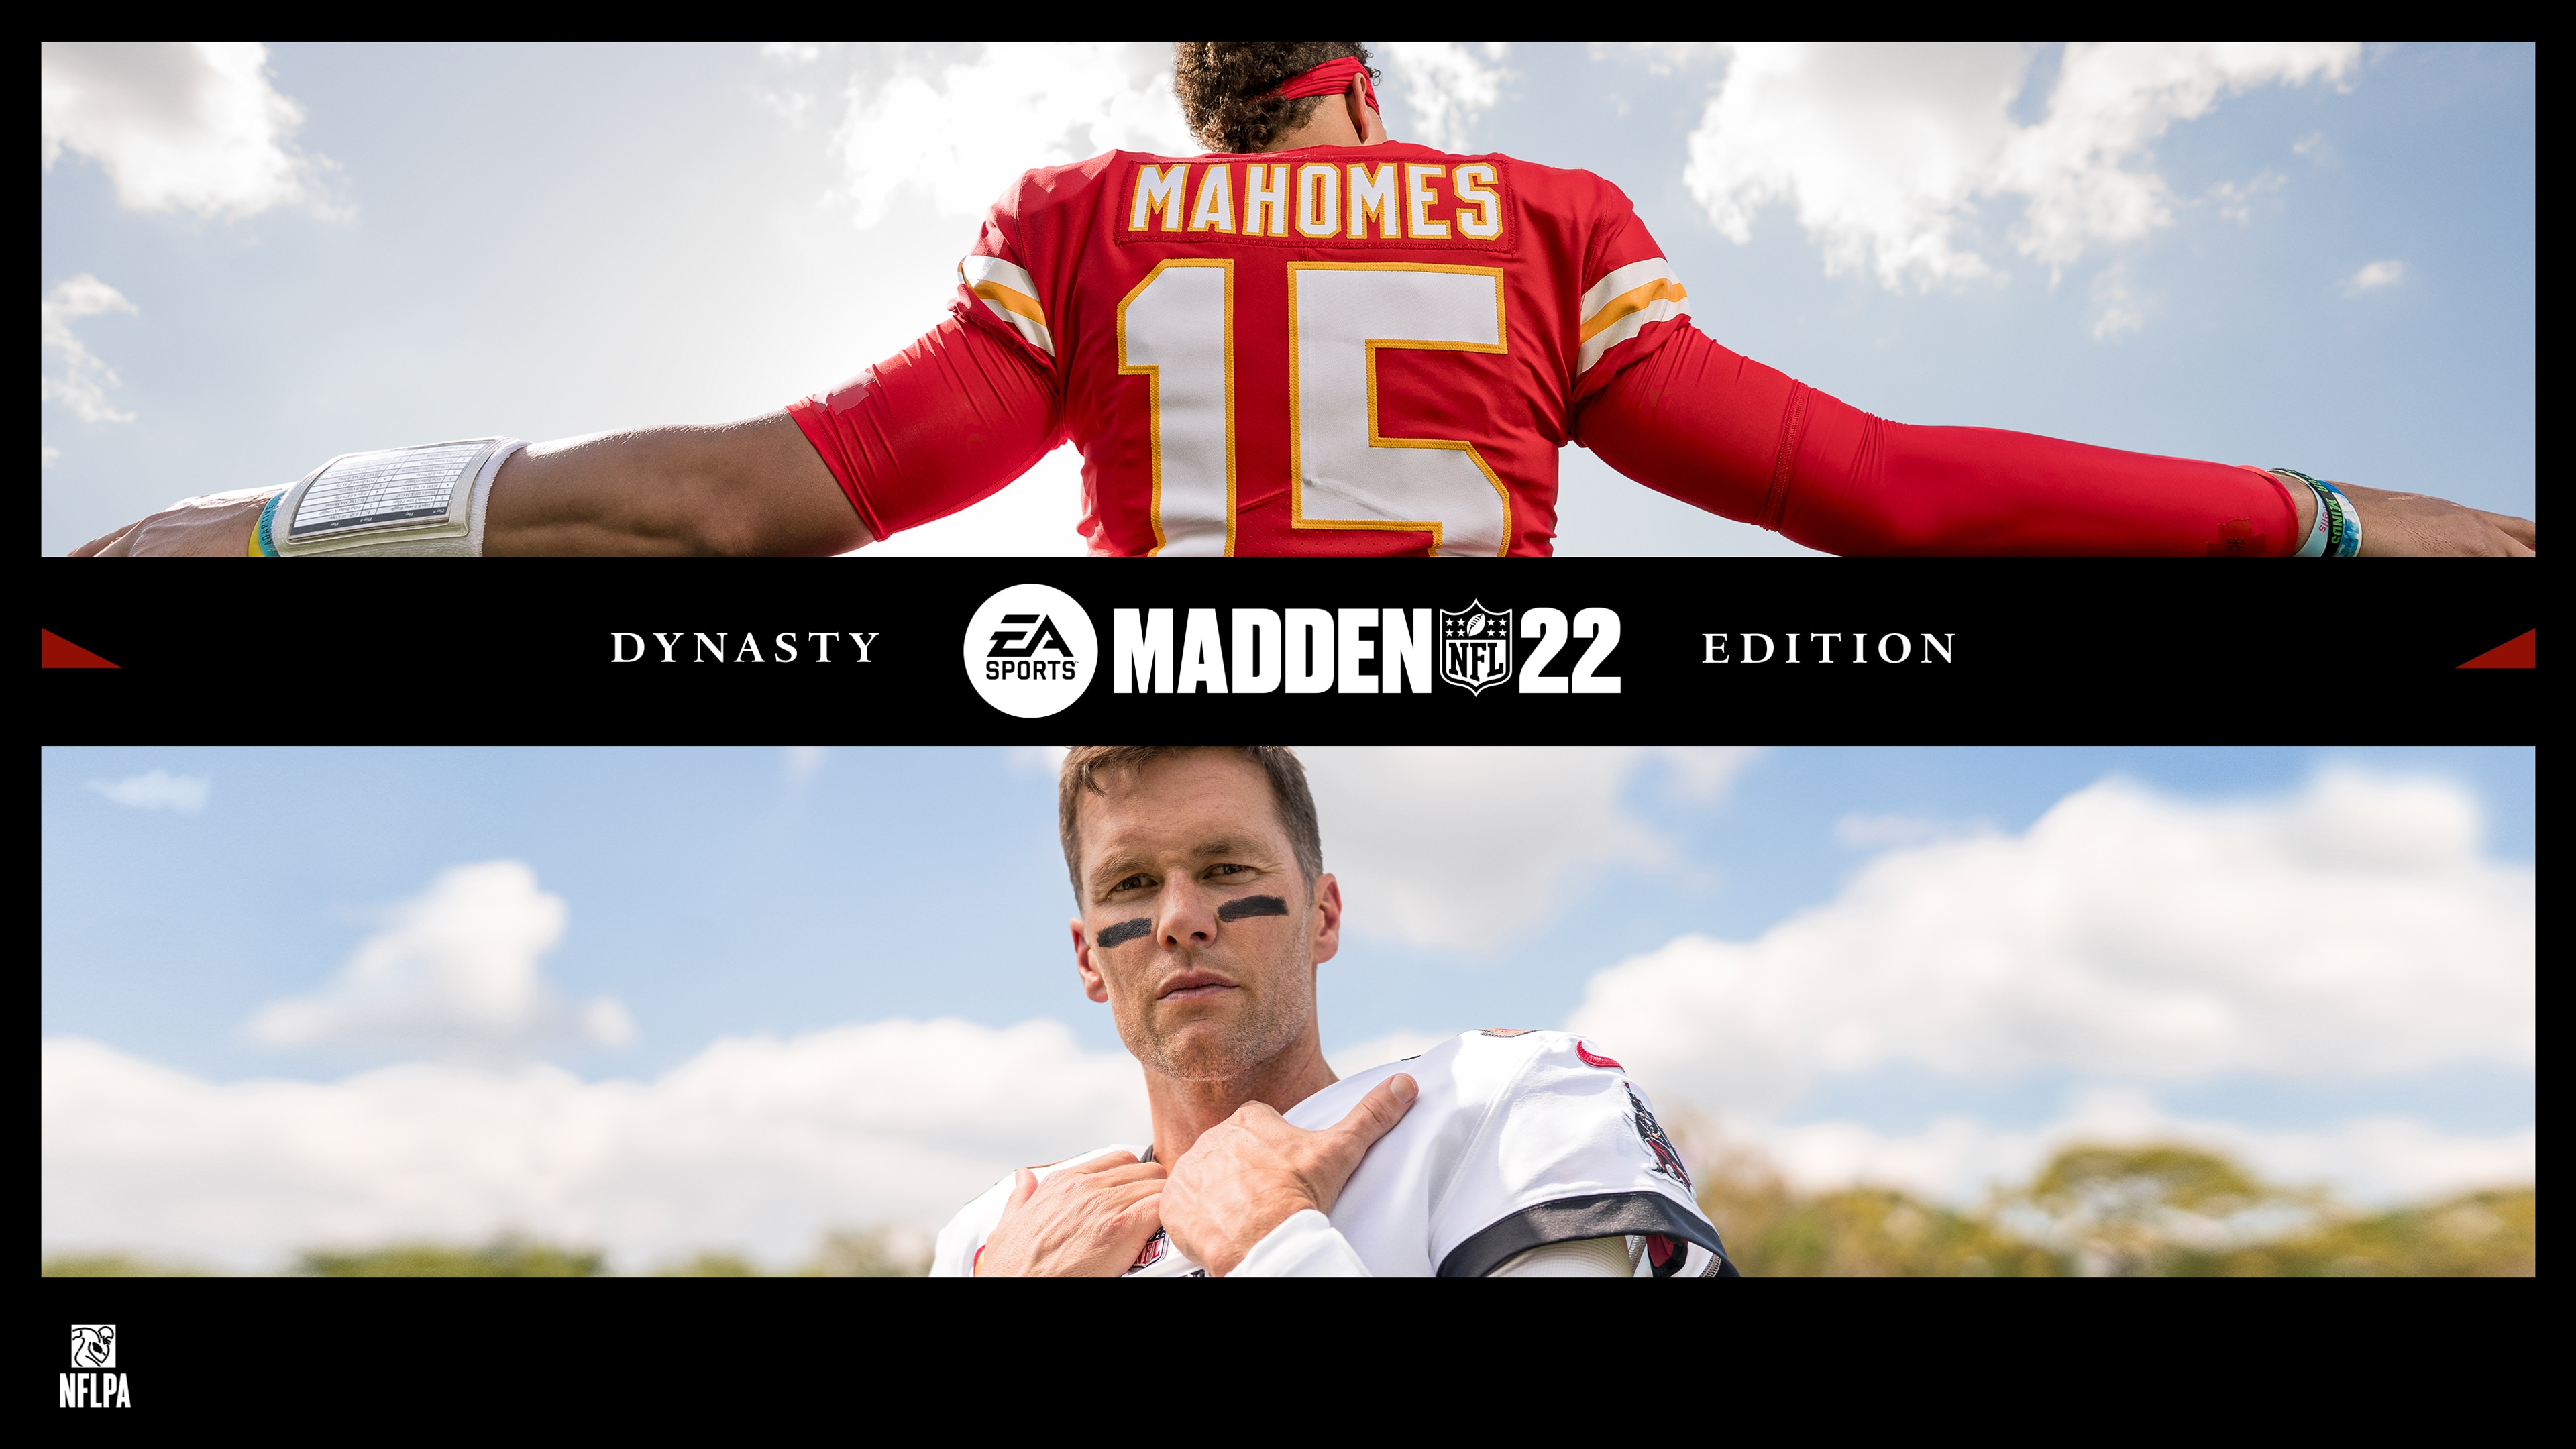 Madden NFL 22 Dynasty Edition PS4™ & PS5™